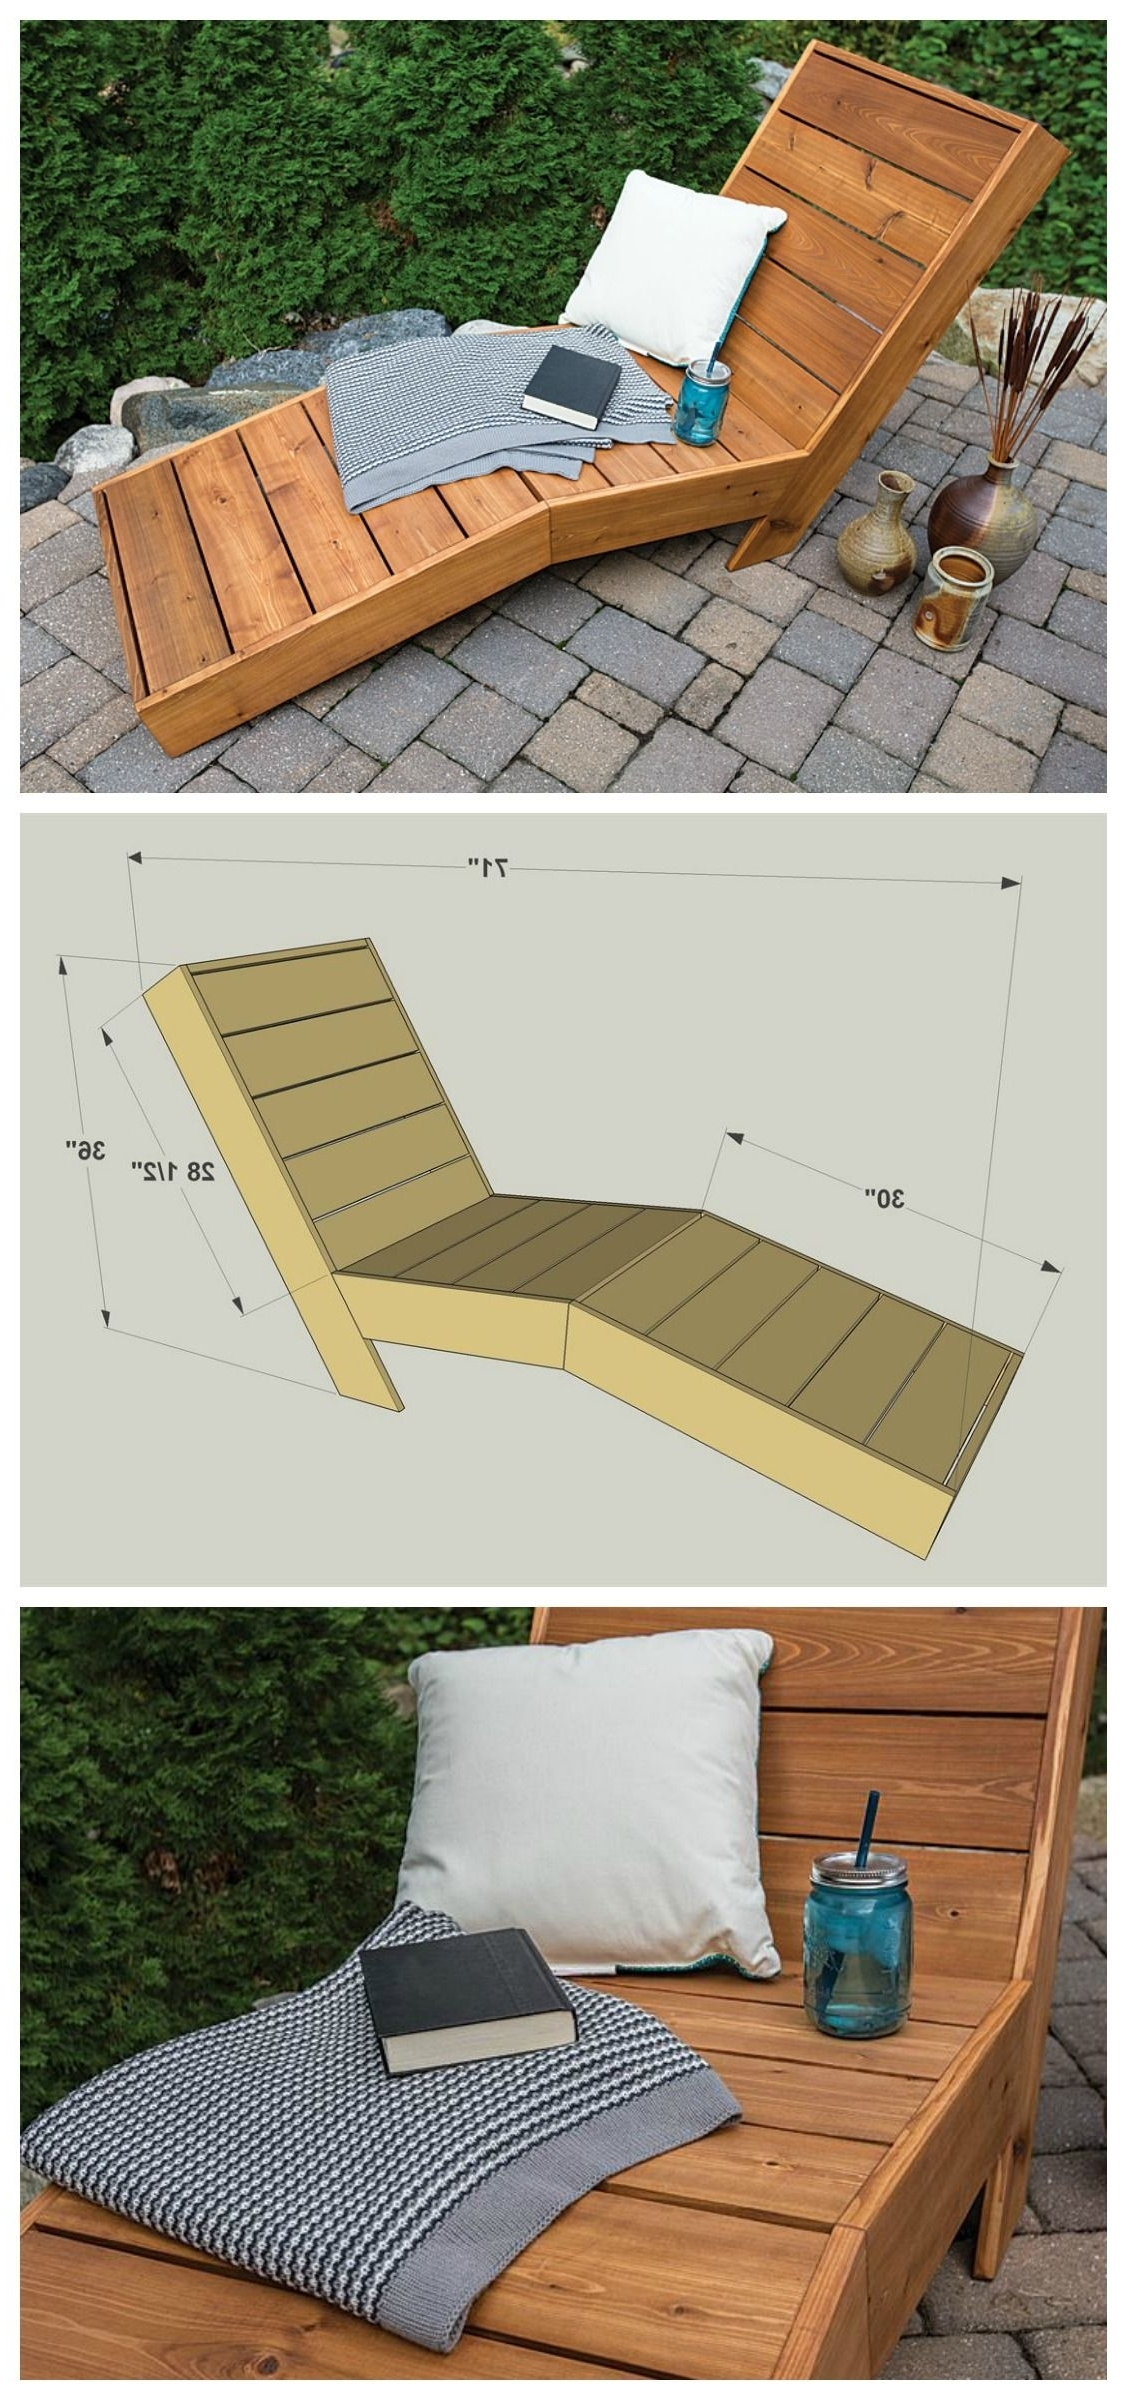 2017 Diy Chaise Lounges For Diy Outdoor Chaise Lounge :: Free Plans At Buildsomething (View 11 of 15)